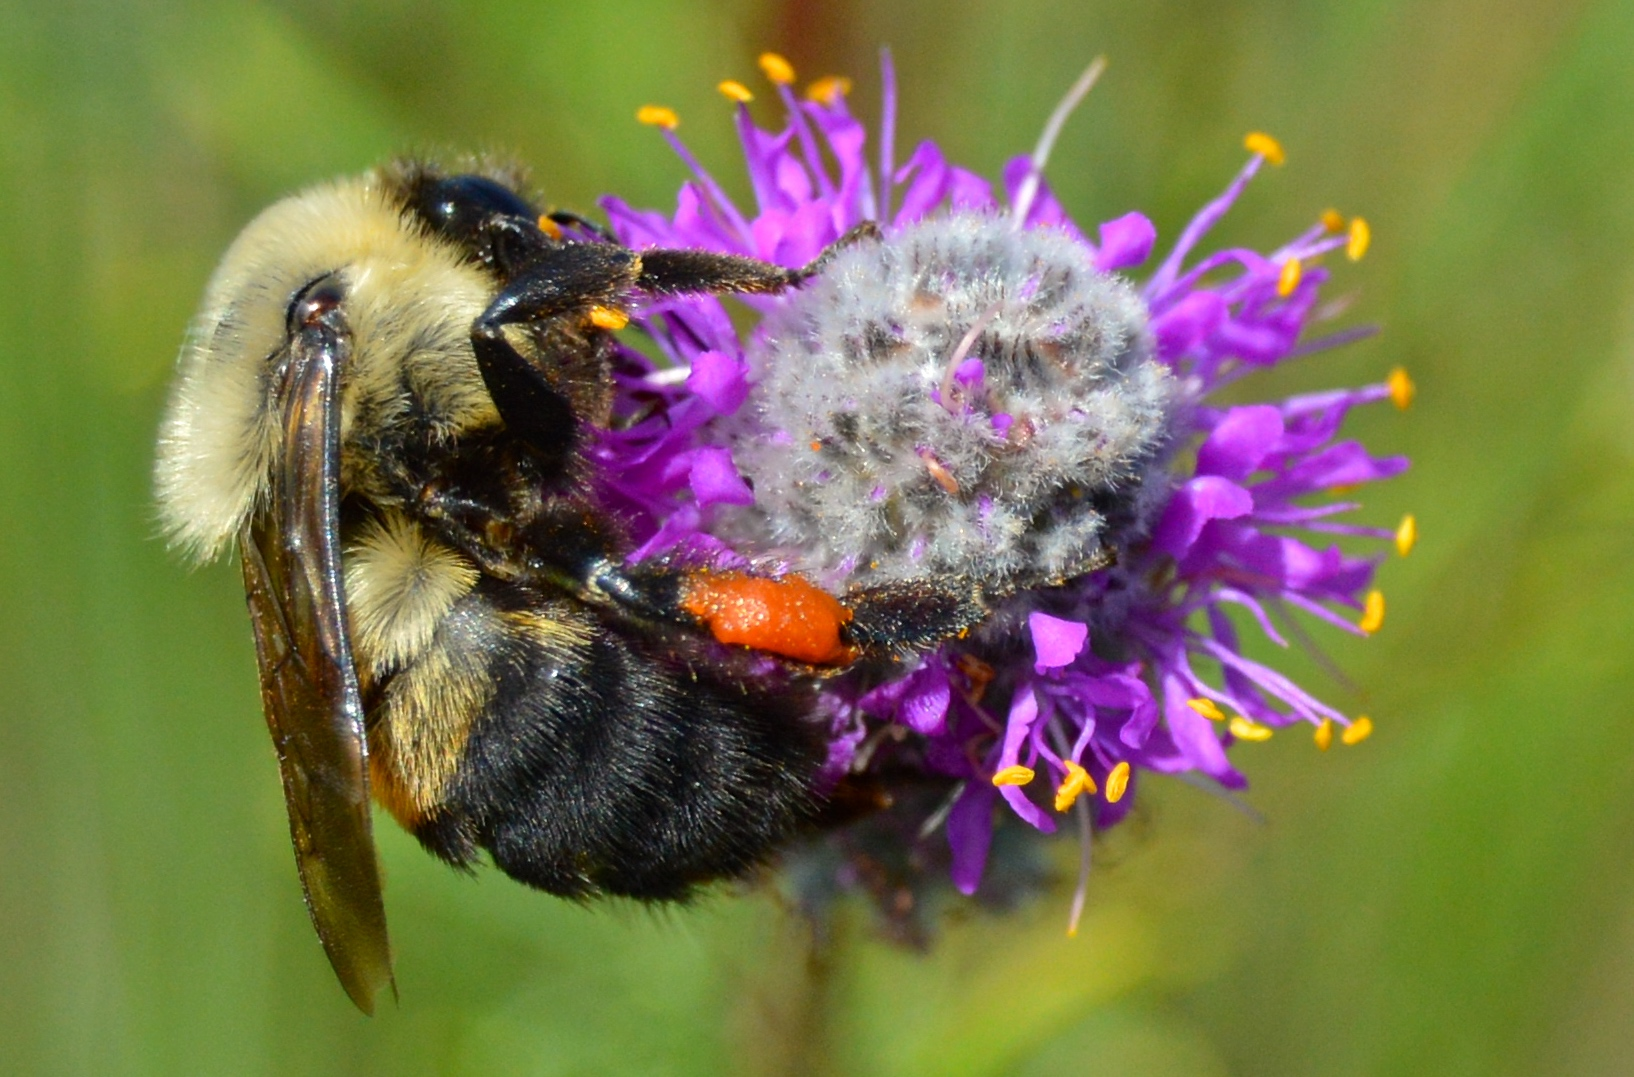 A fuzzy, yellow and black striped bumble bee clings to a spherical flower.